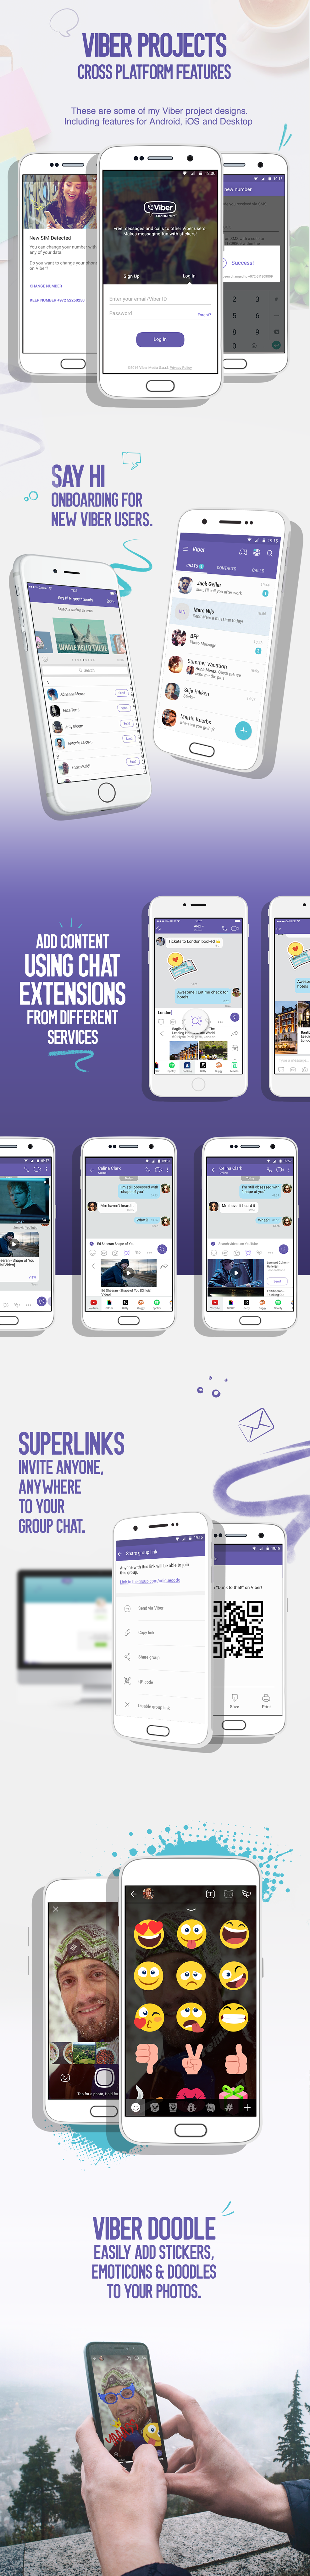 Viber-android-Strip01